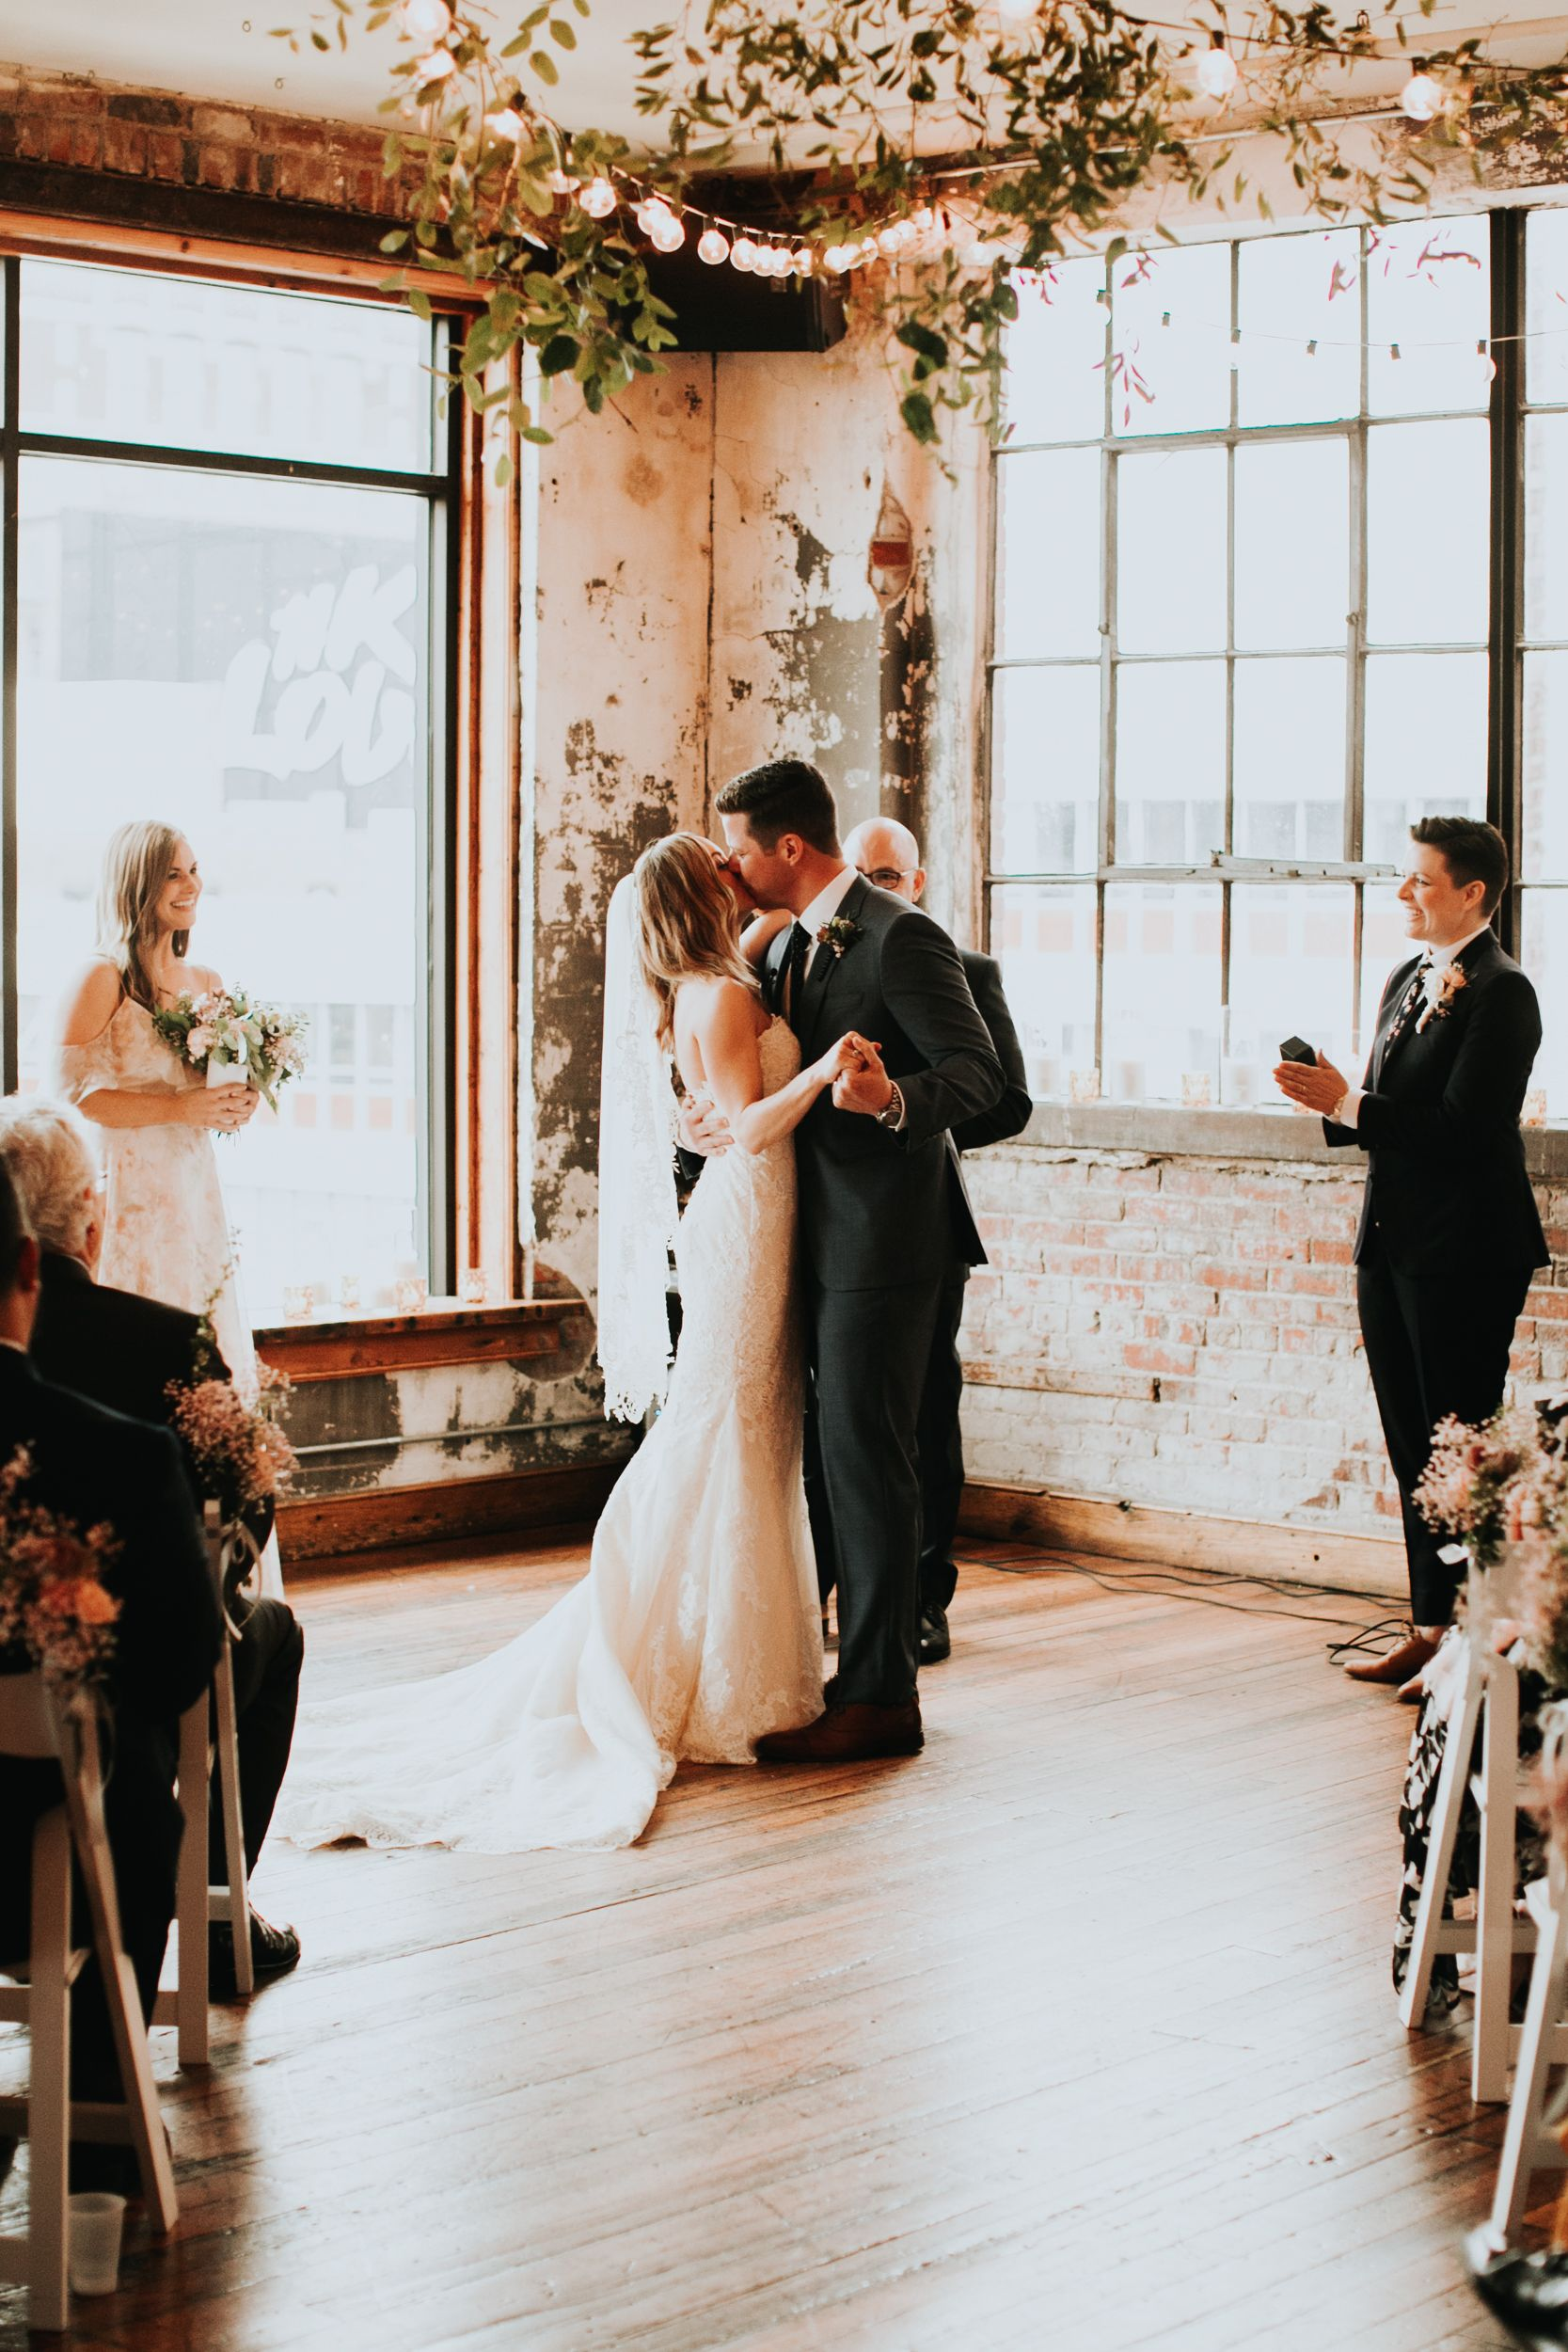 Britt And Scott S Simple Kansas City Wedding At The Bride And The Bauer The Bold Americana Kansas City Wedding Pronovias Wedding Dress Industrial Urban Wedding